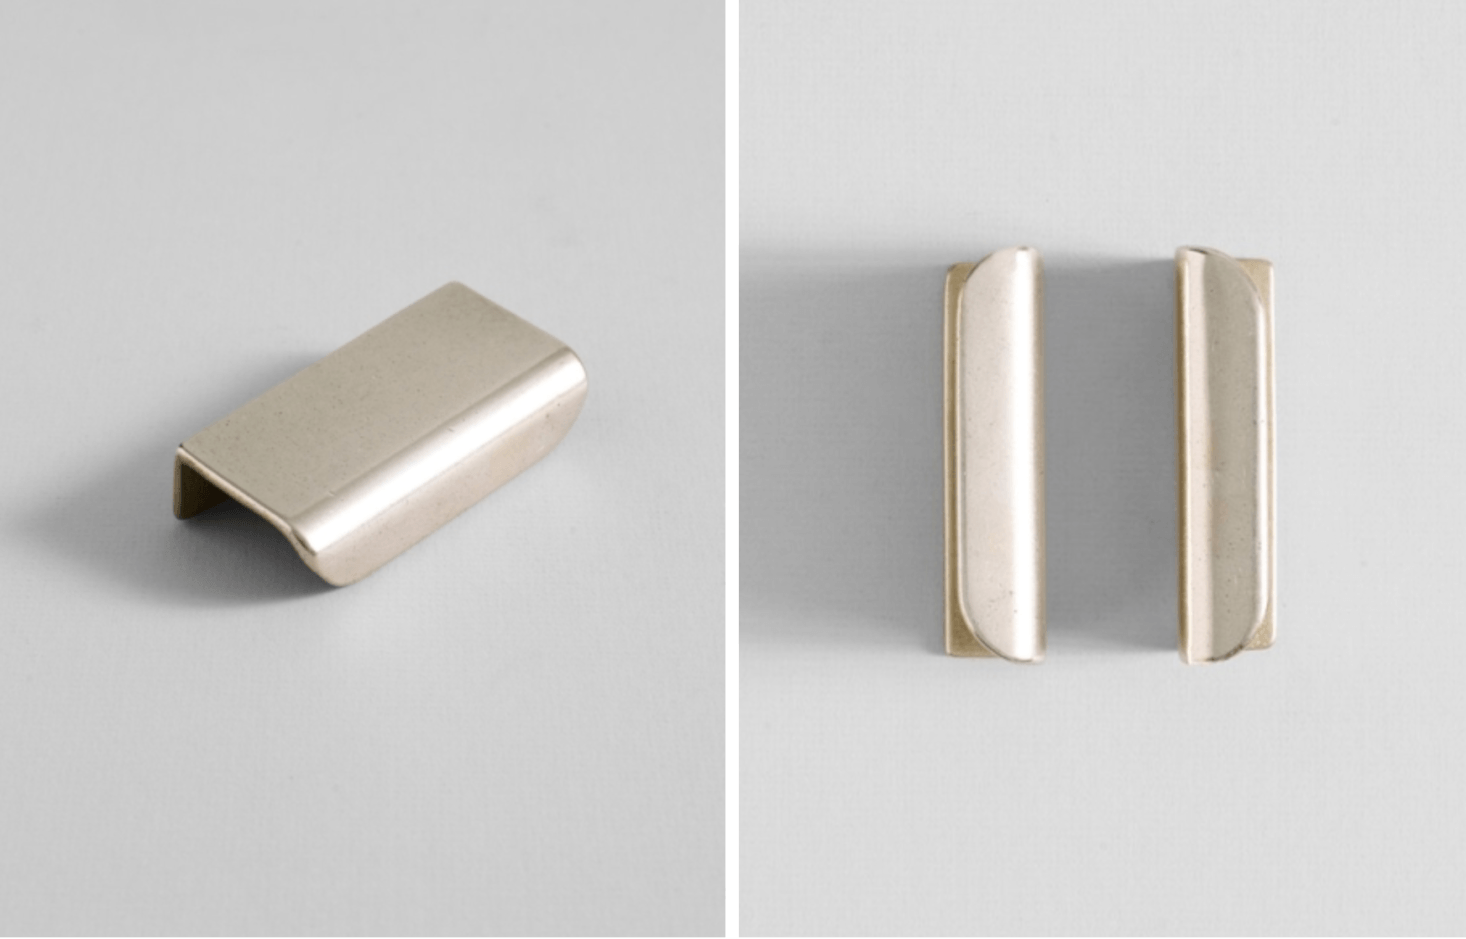 Another piece from designer Henry Wilson, the brass Cove Handle Mini is $90.